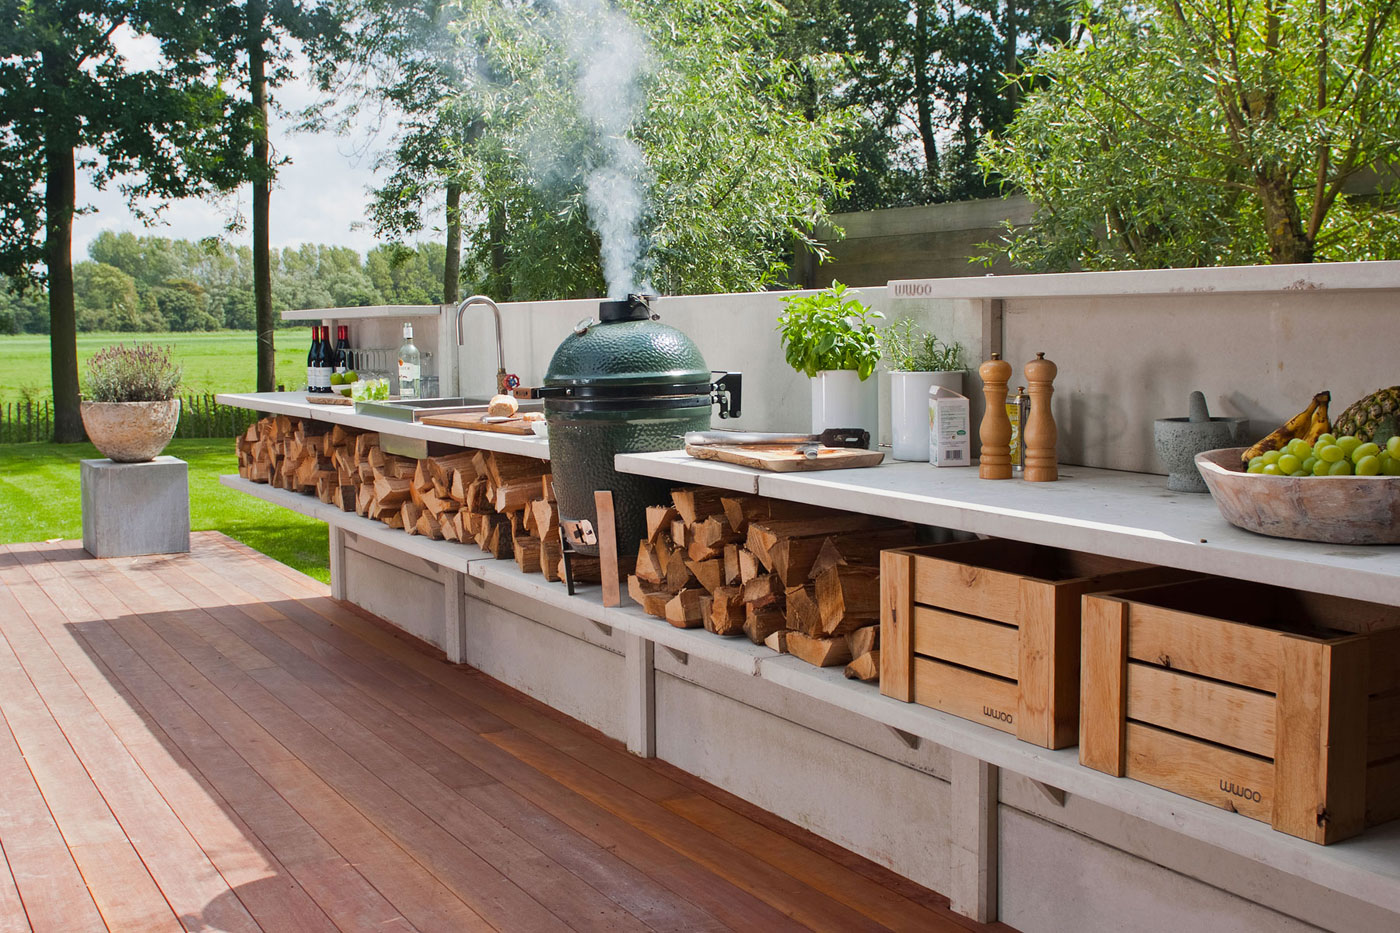 Outdoor Kitchen Pictures 15 best outdoor kitchen ideas and designs - pictures of beautiful